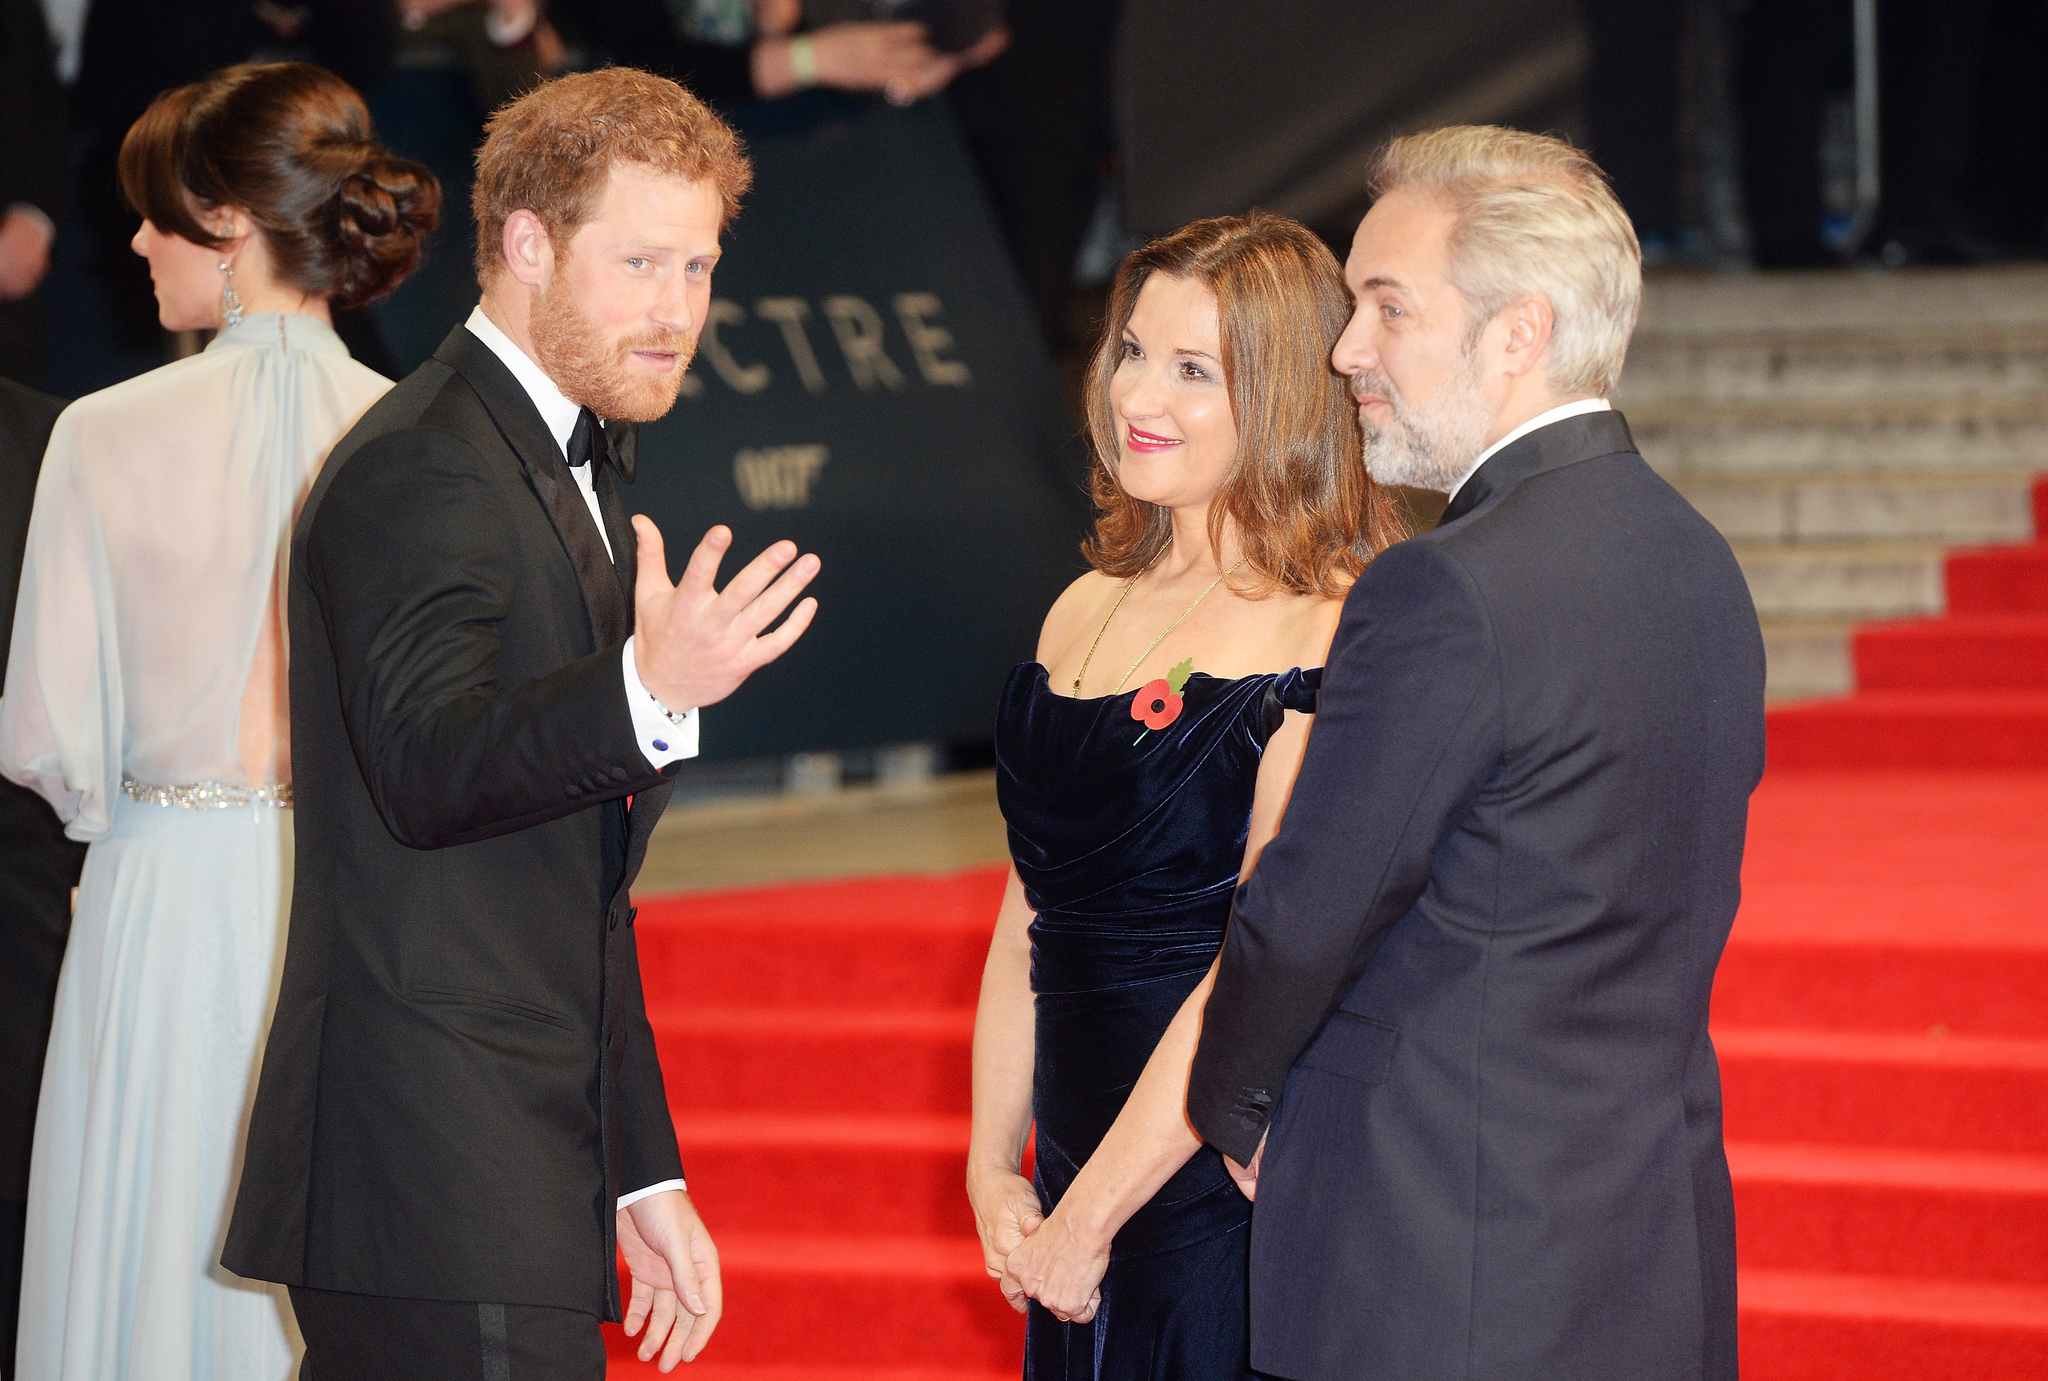 Sam Mendes, Barbara Broccoli, Prince Harry, and Prince Harry at an event for Spectre (2015)